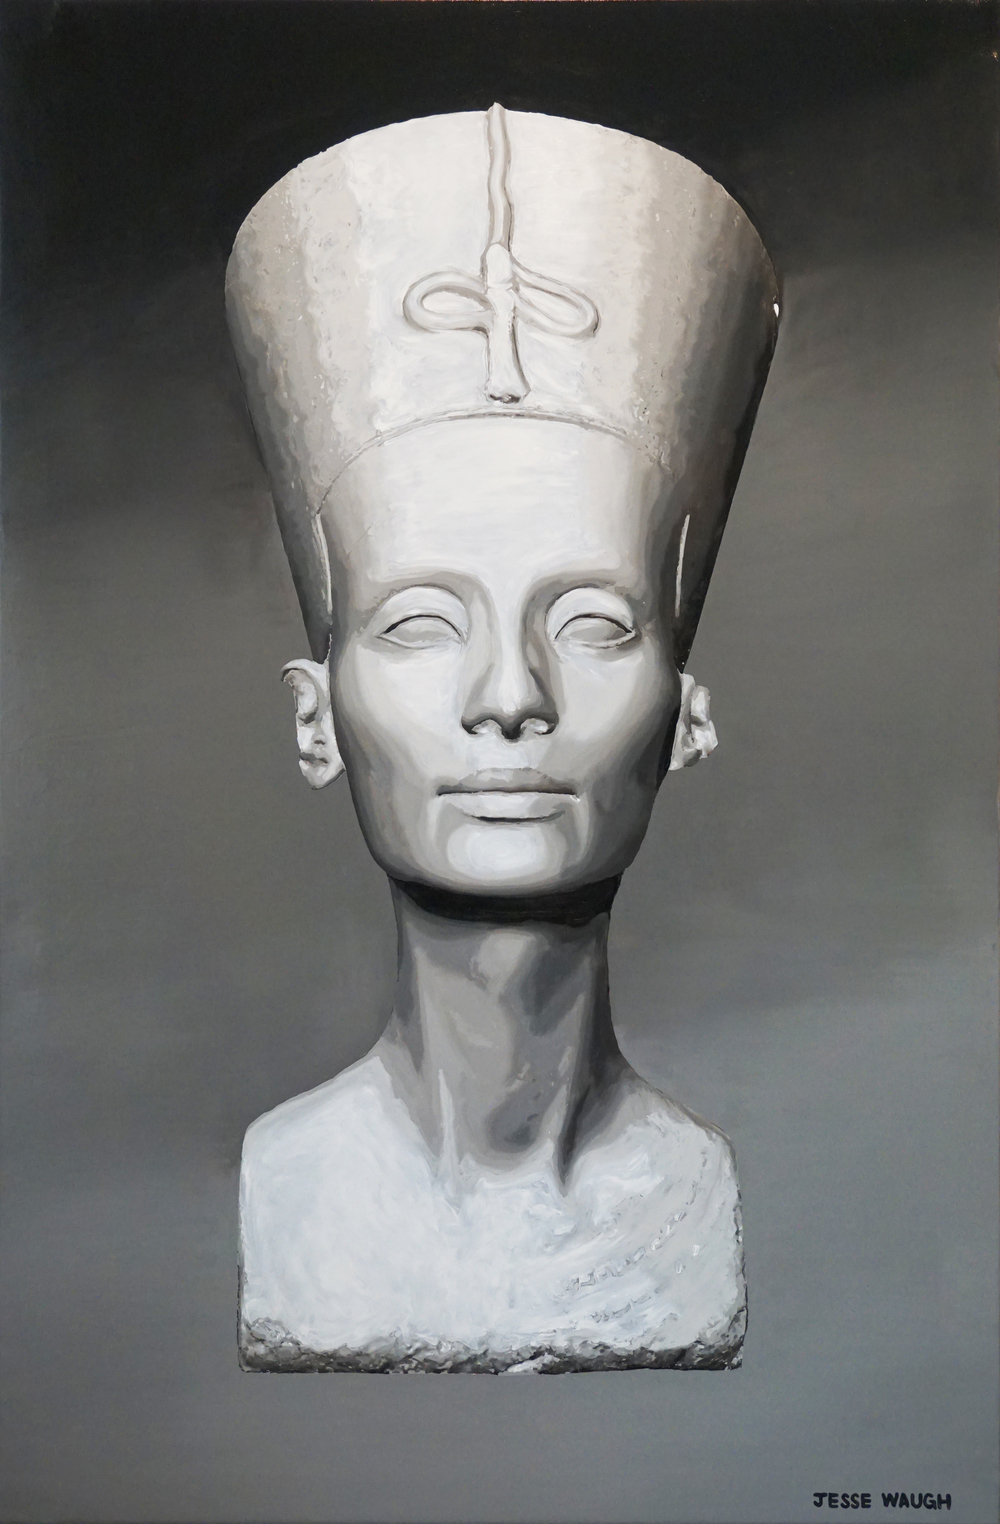 JESSE WAUGH THE BEAUTIFUL ONE (BUST OF NEFERTITI) 2016 OIL ON CANVAS 97 X 146 CM